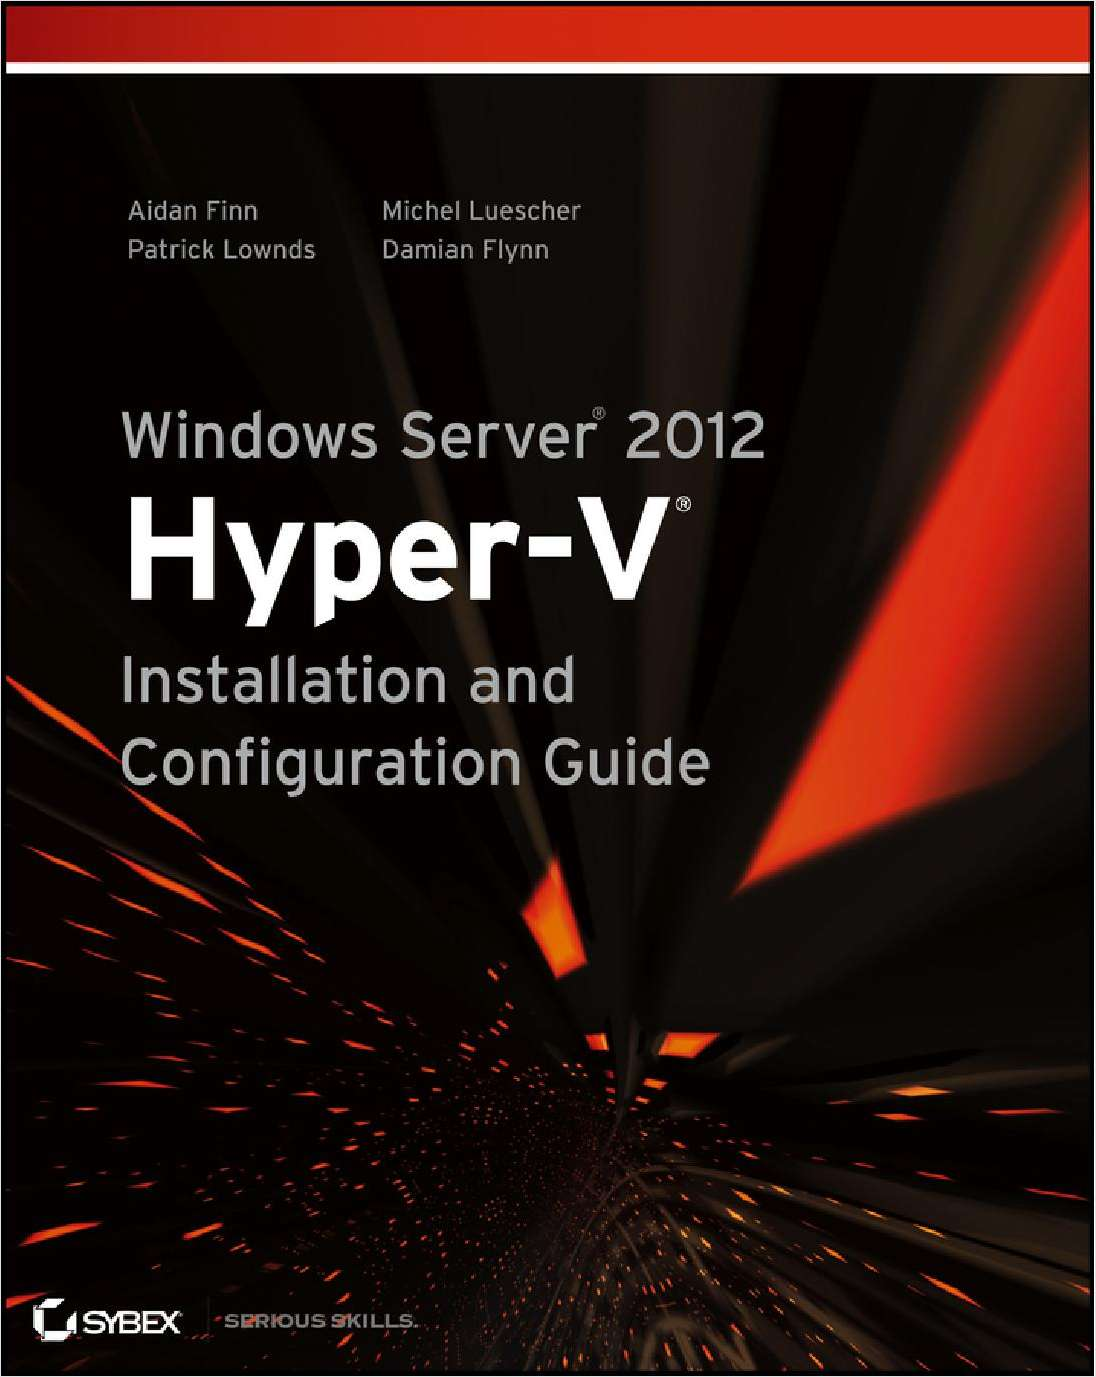 Windows Server 2012 Hyper-V Installation and Configuration Guide--Free Sample Chapter